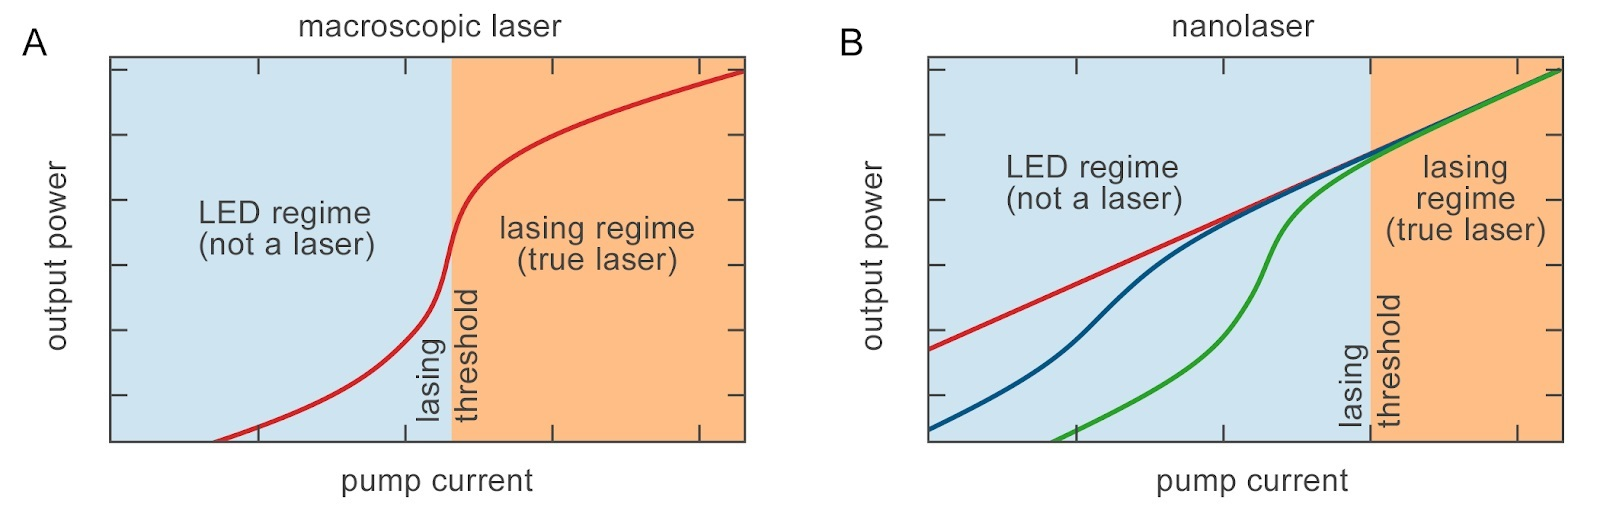 Dependence of the output power on pump current for a conventional macroscopic laser